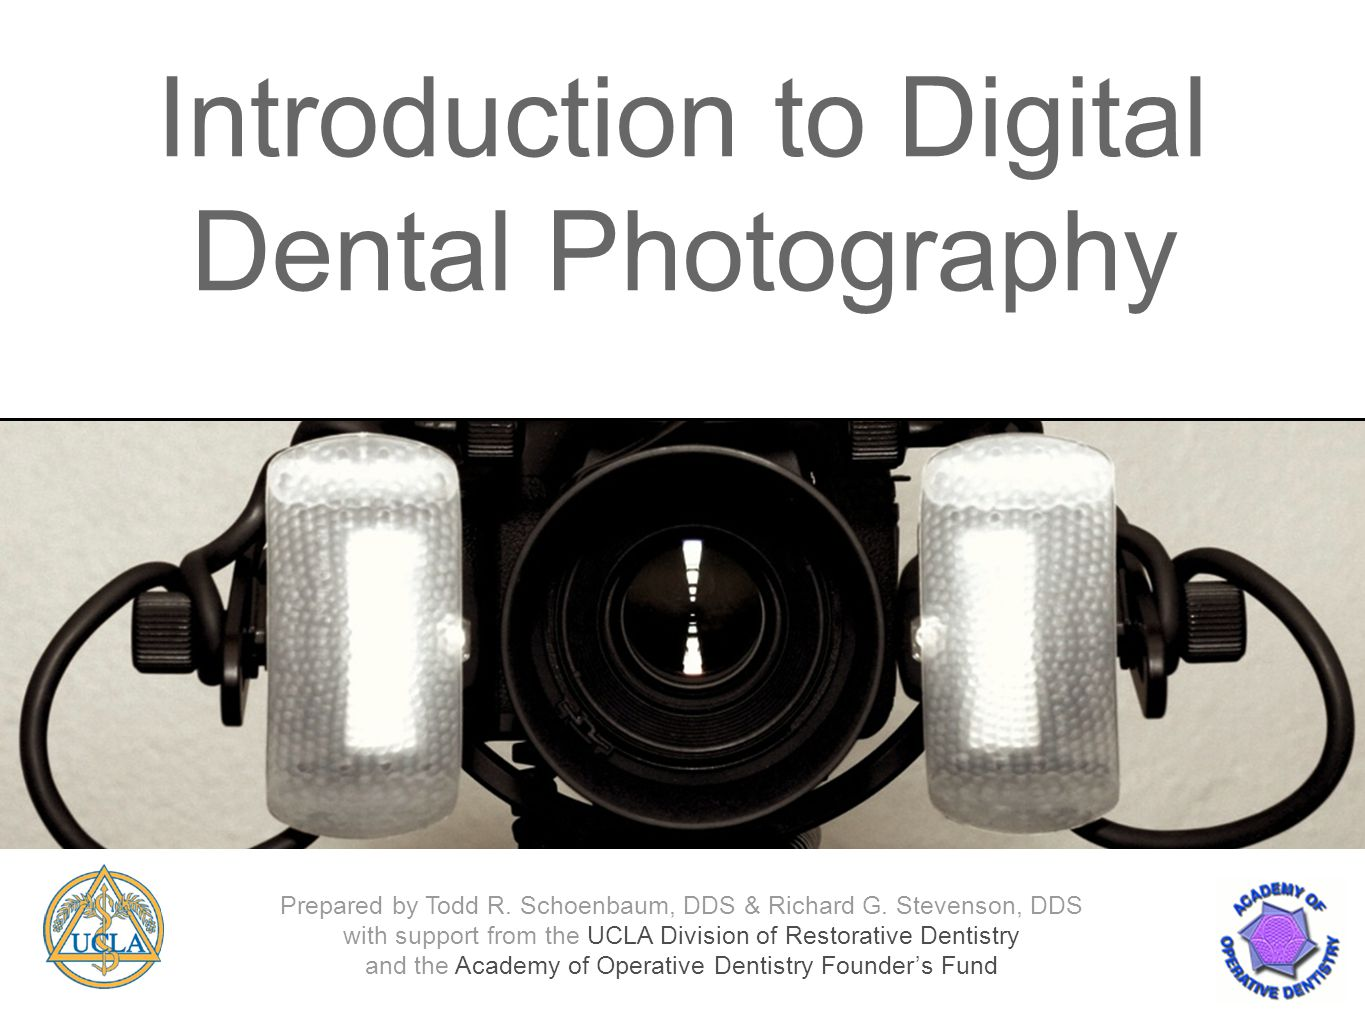 Introduction to Digital Dental Photography